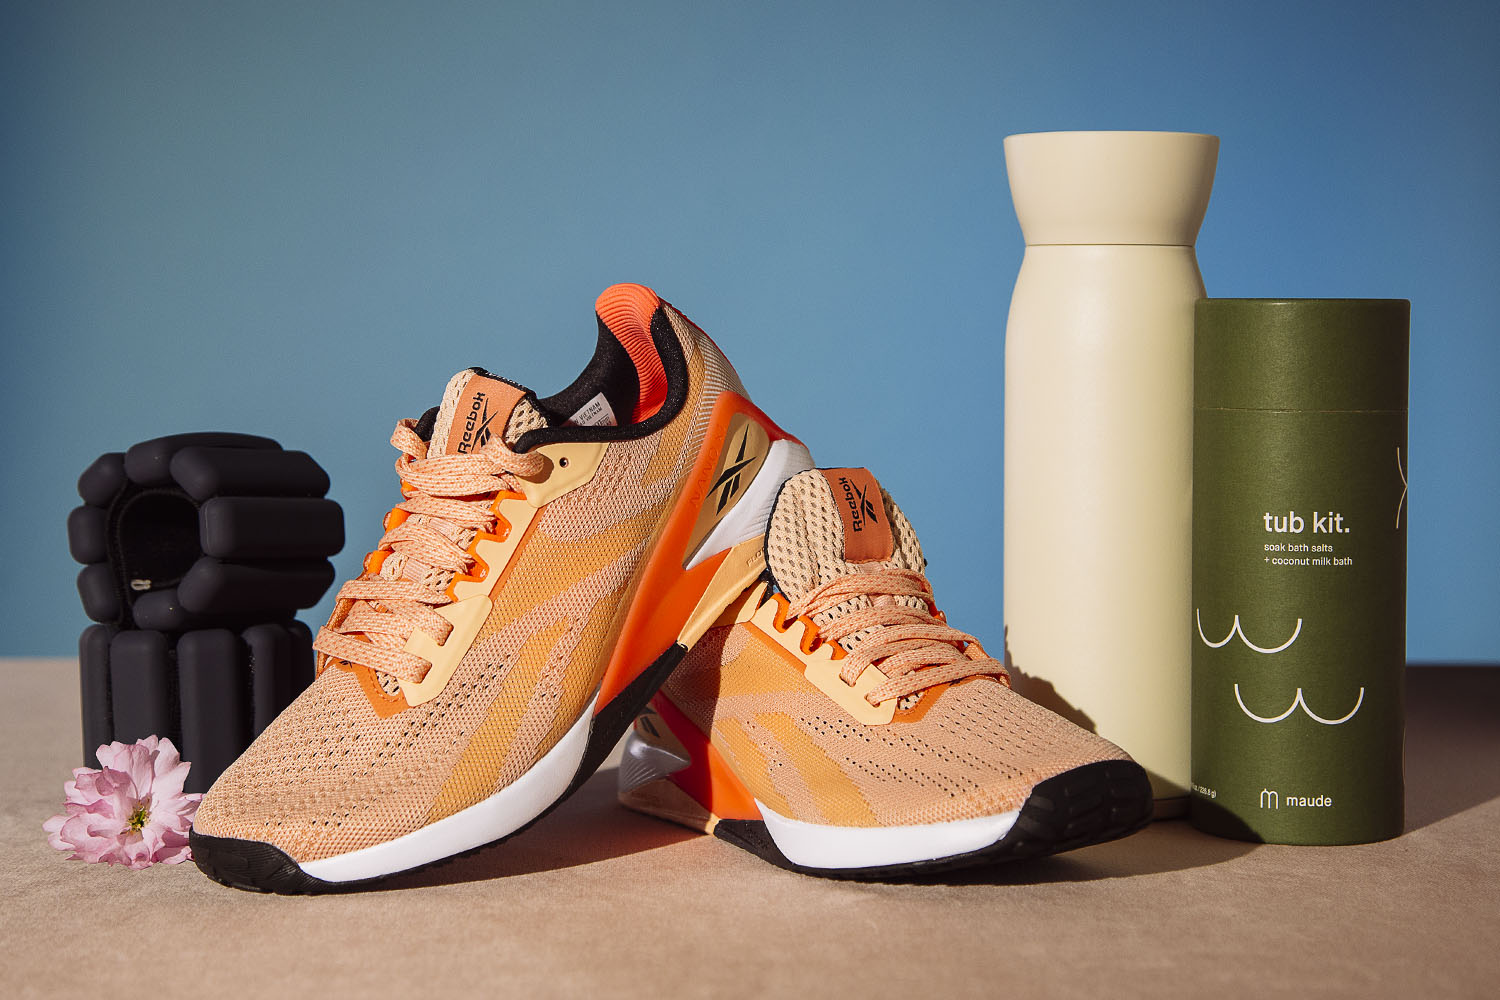 bracelet weights, running shoes, water bottles and bath salts